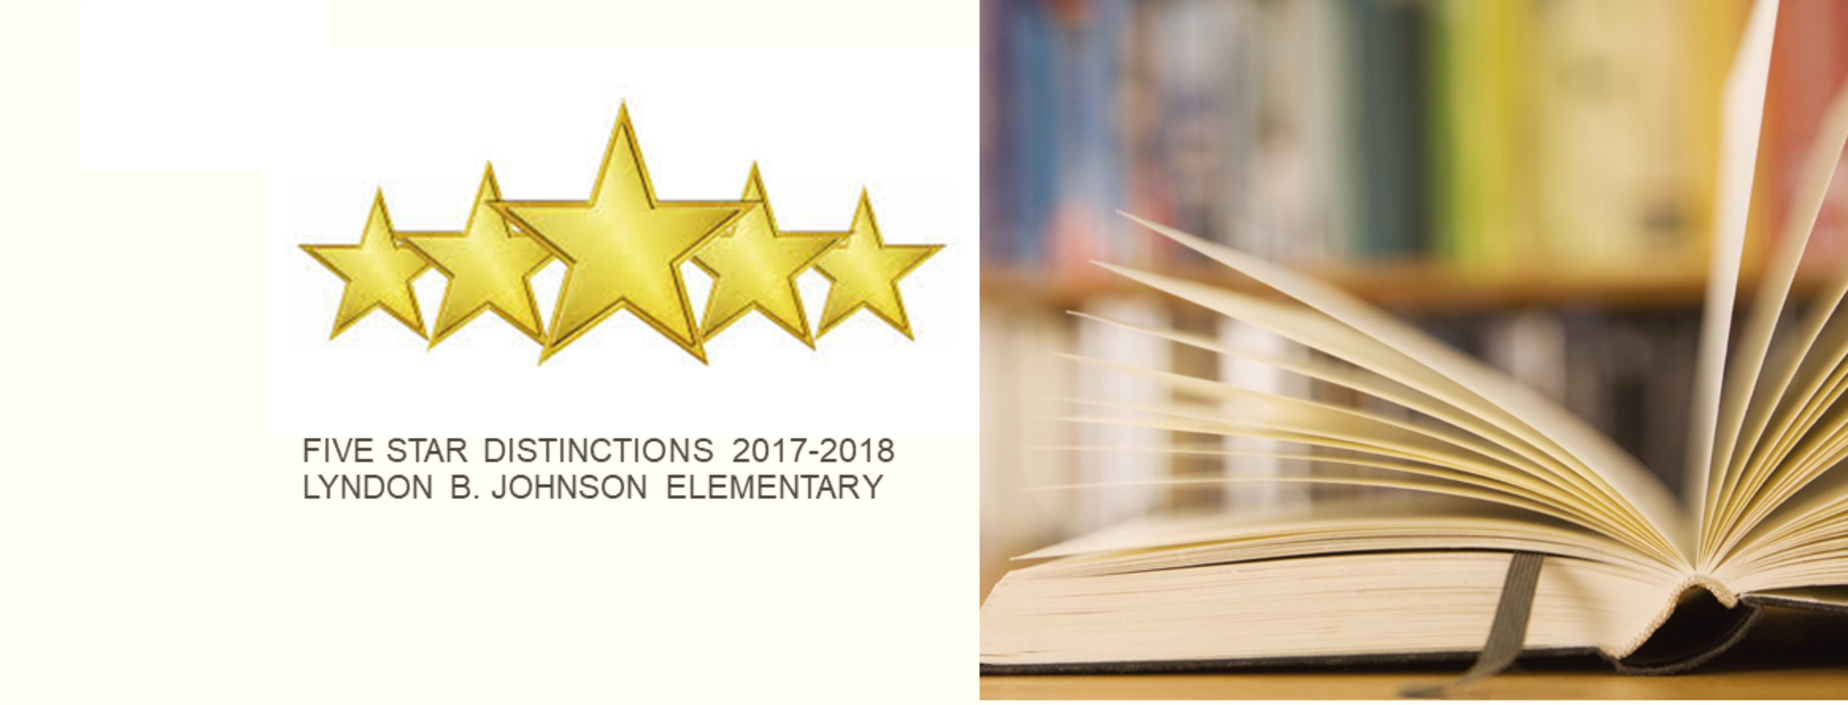 FIVE STAR DISTINCTIONS